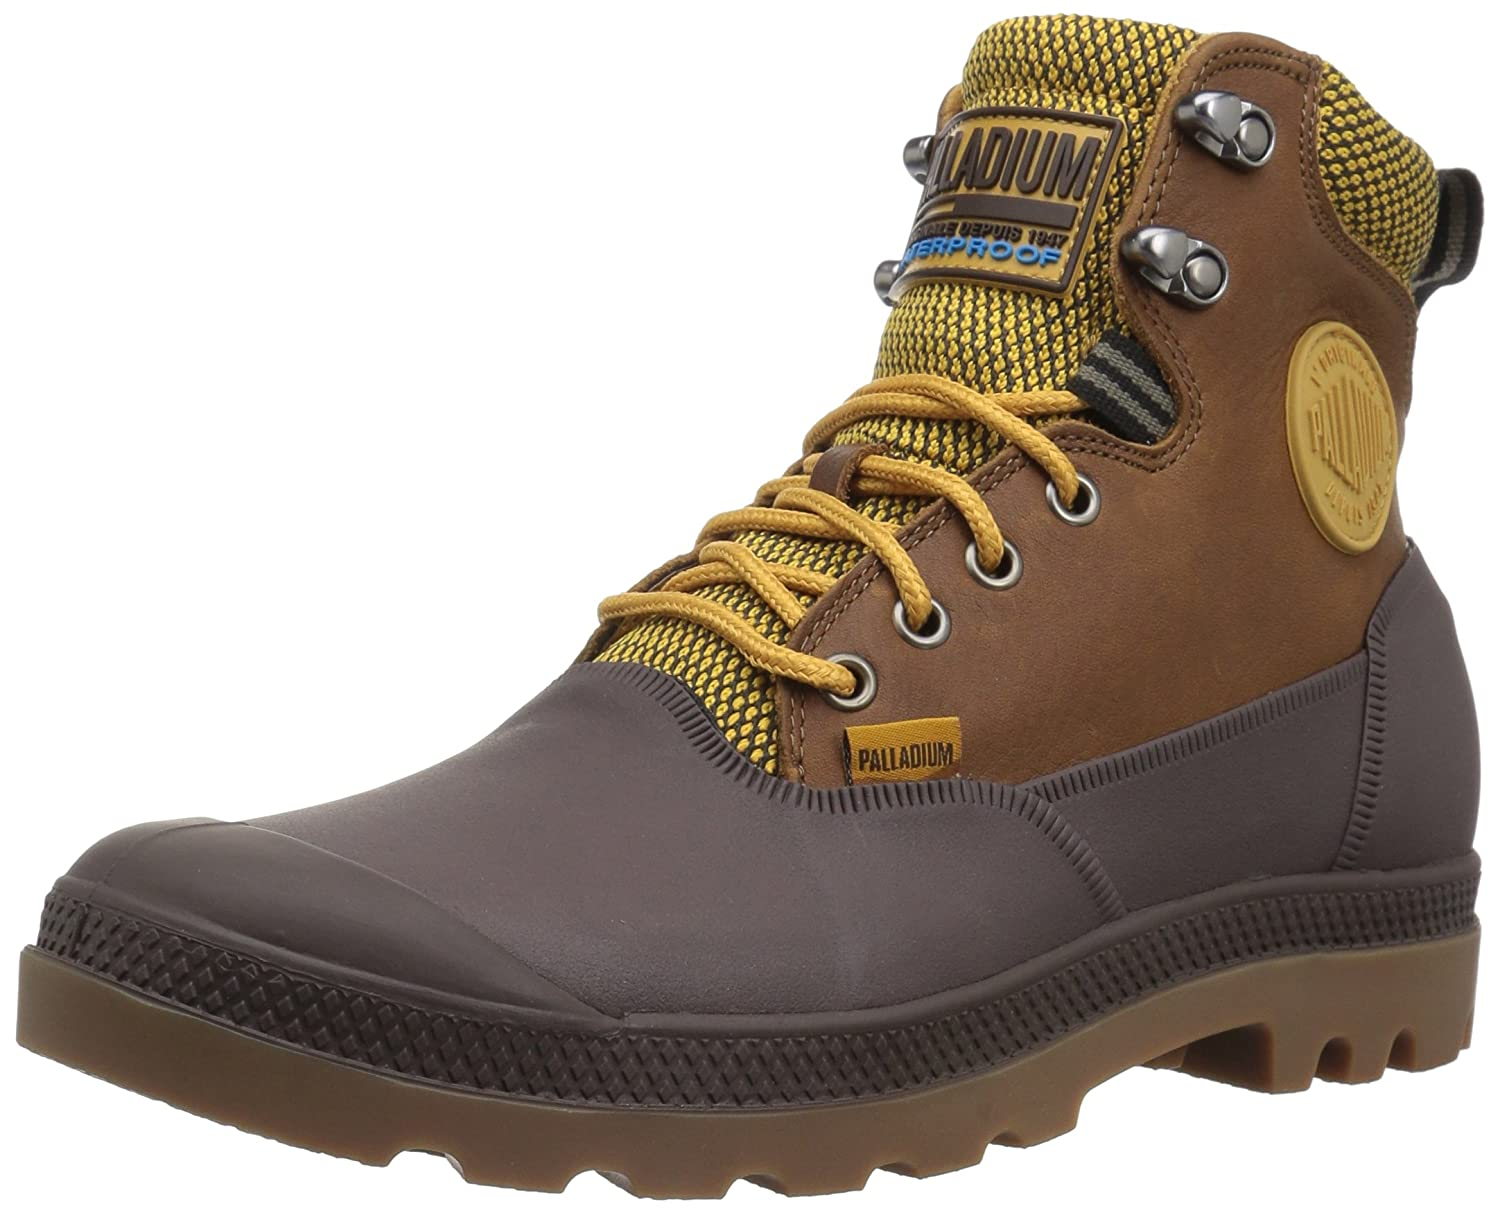 Palladium Men's Sport Cuff Wp 2.0 Rain Boot B01N4U1K0H 10.5 D(M) US|Amber Gold/Chocolate